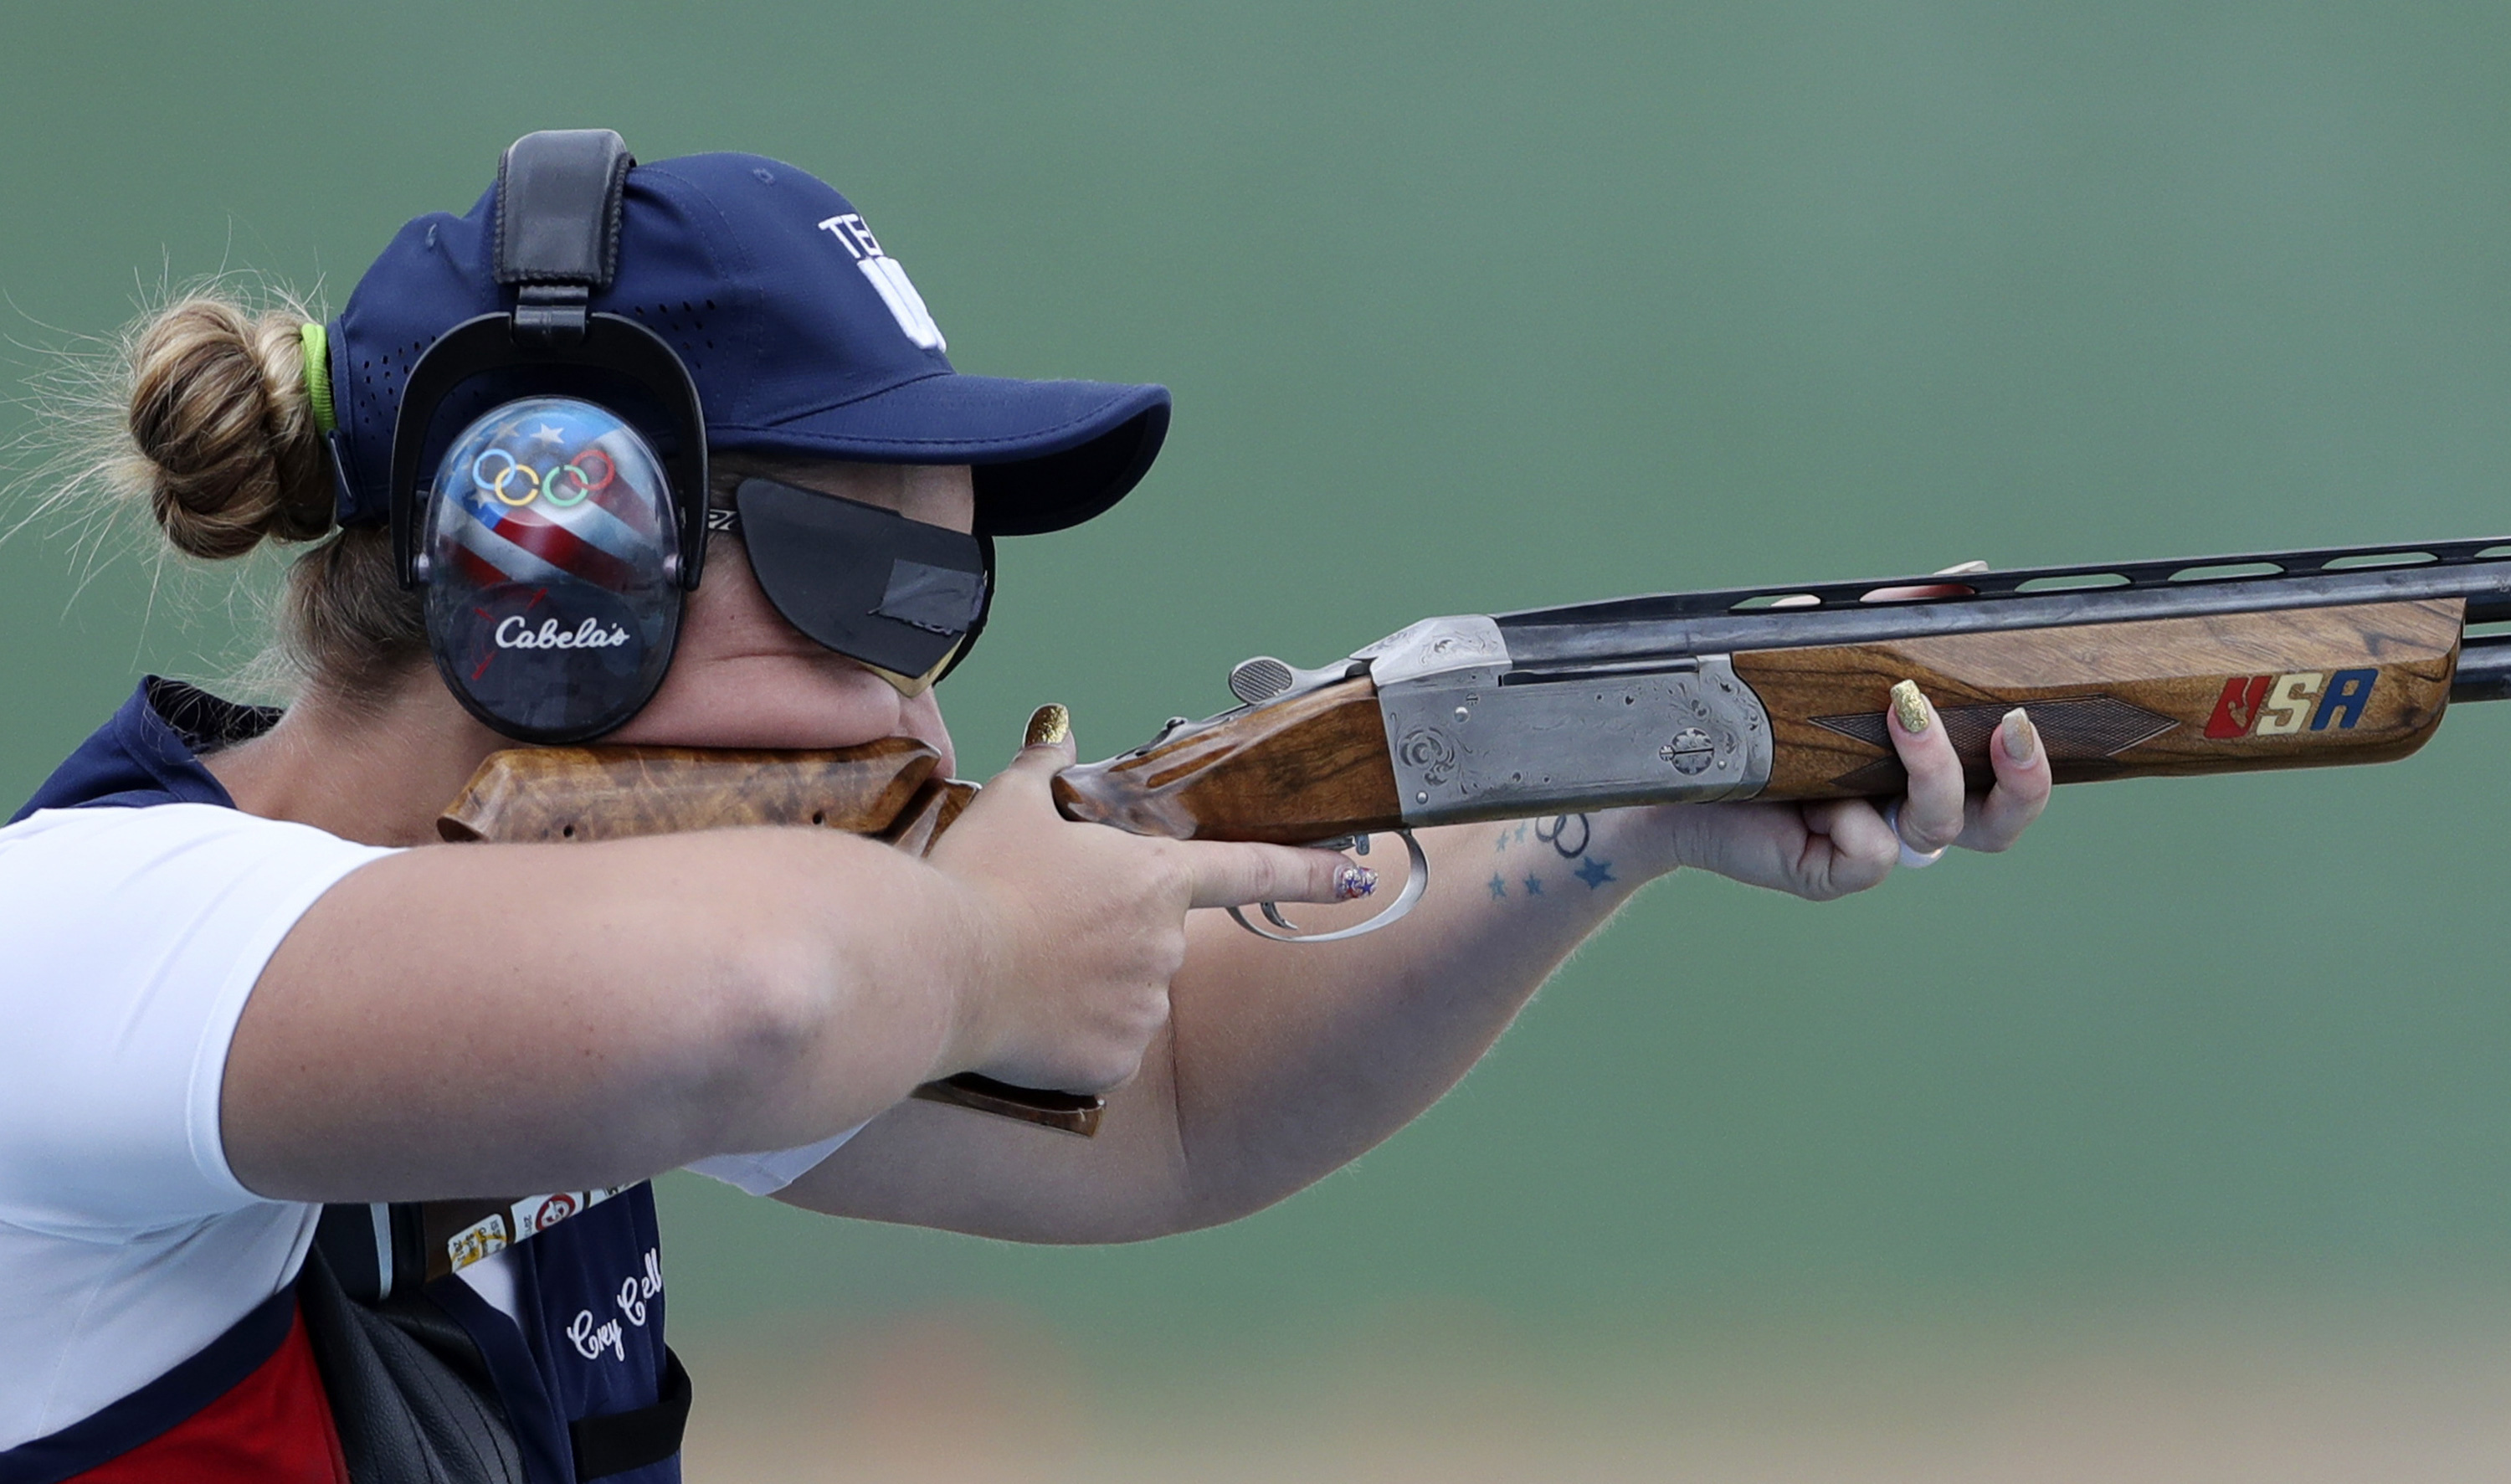 Corey Cogdell of the United States competes during the bronze medal match of the women's trap event at Olympic Shooting Center at the 2016 Summer Olympics in Rio de Janeiro, Brazil, Sunday, Aug. 7, 2016. Cogdell won the bronze medal. (AP Photo/Eugene Hosh